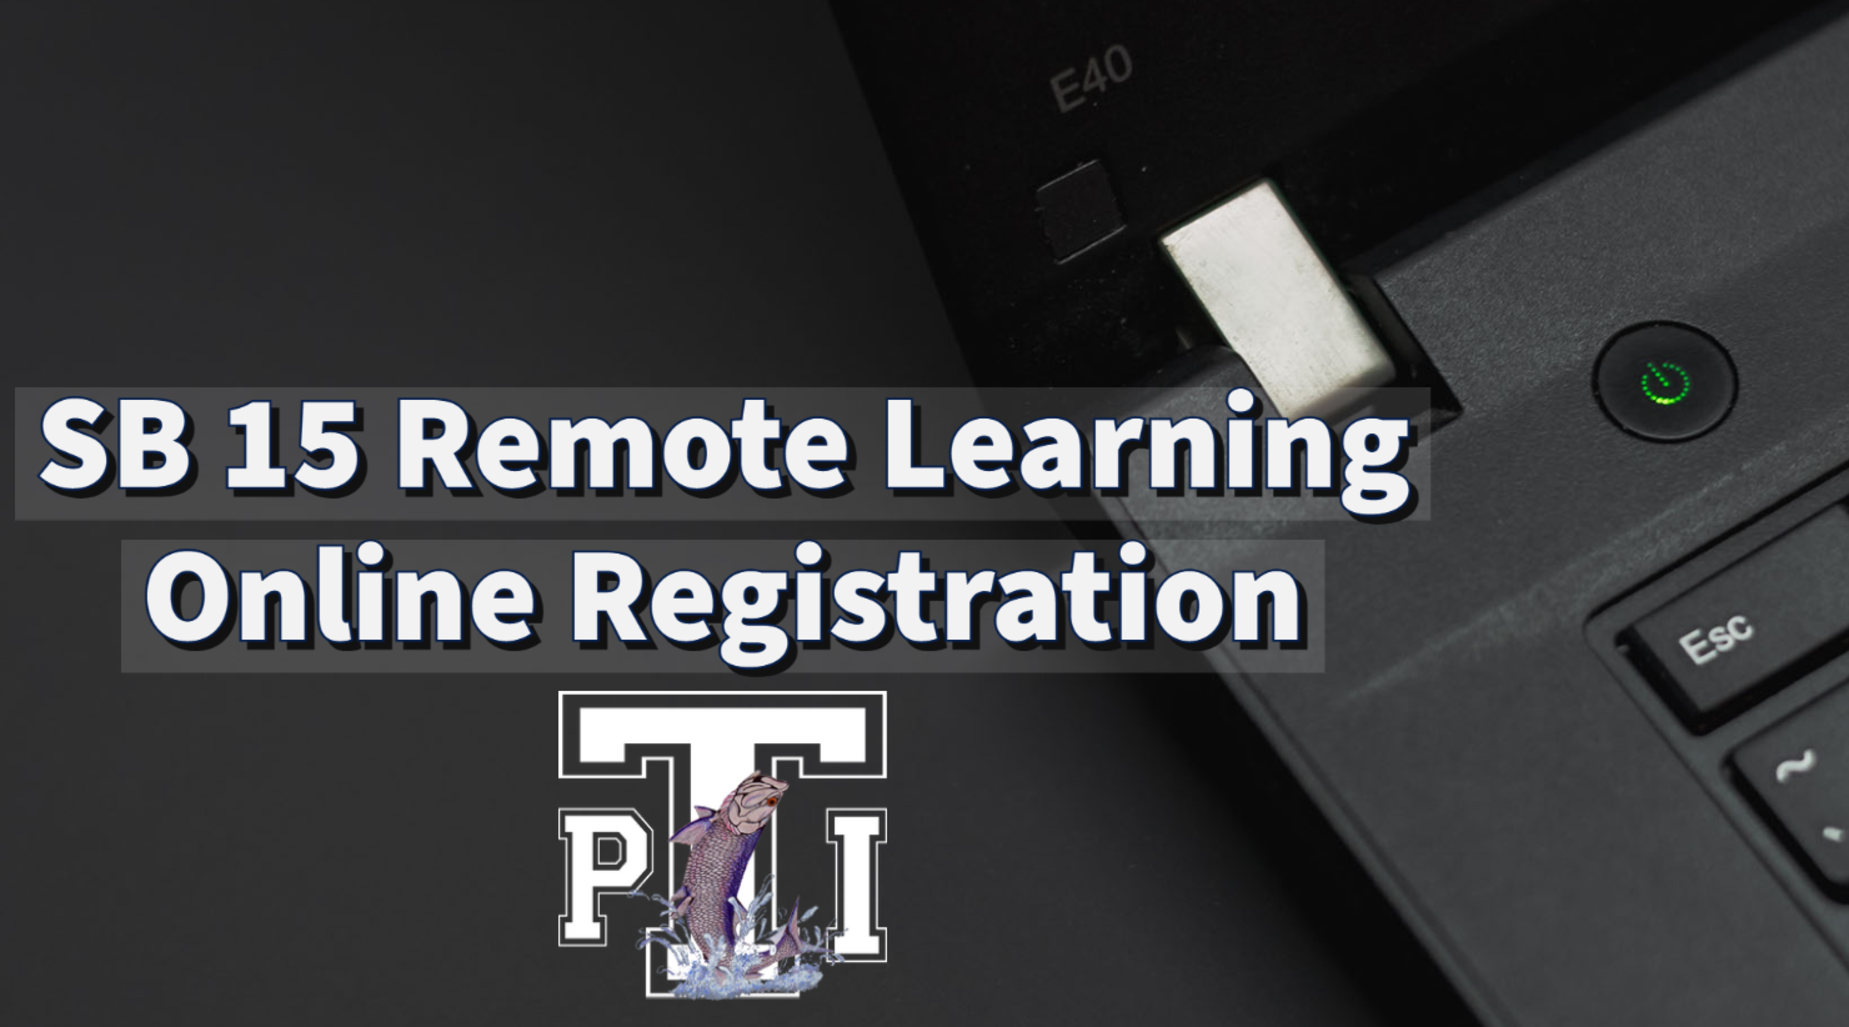 Remote Learning Application